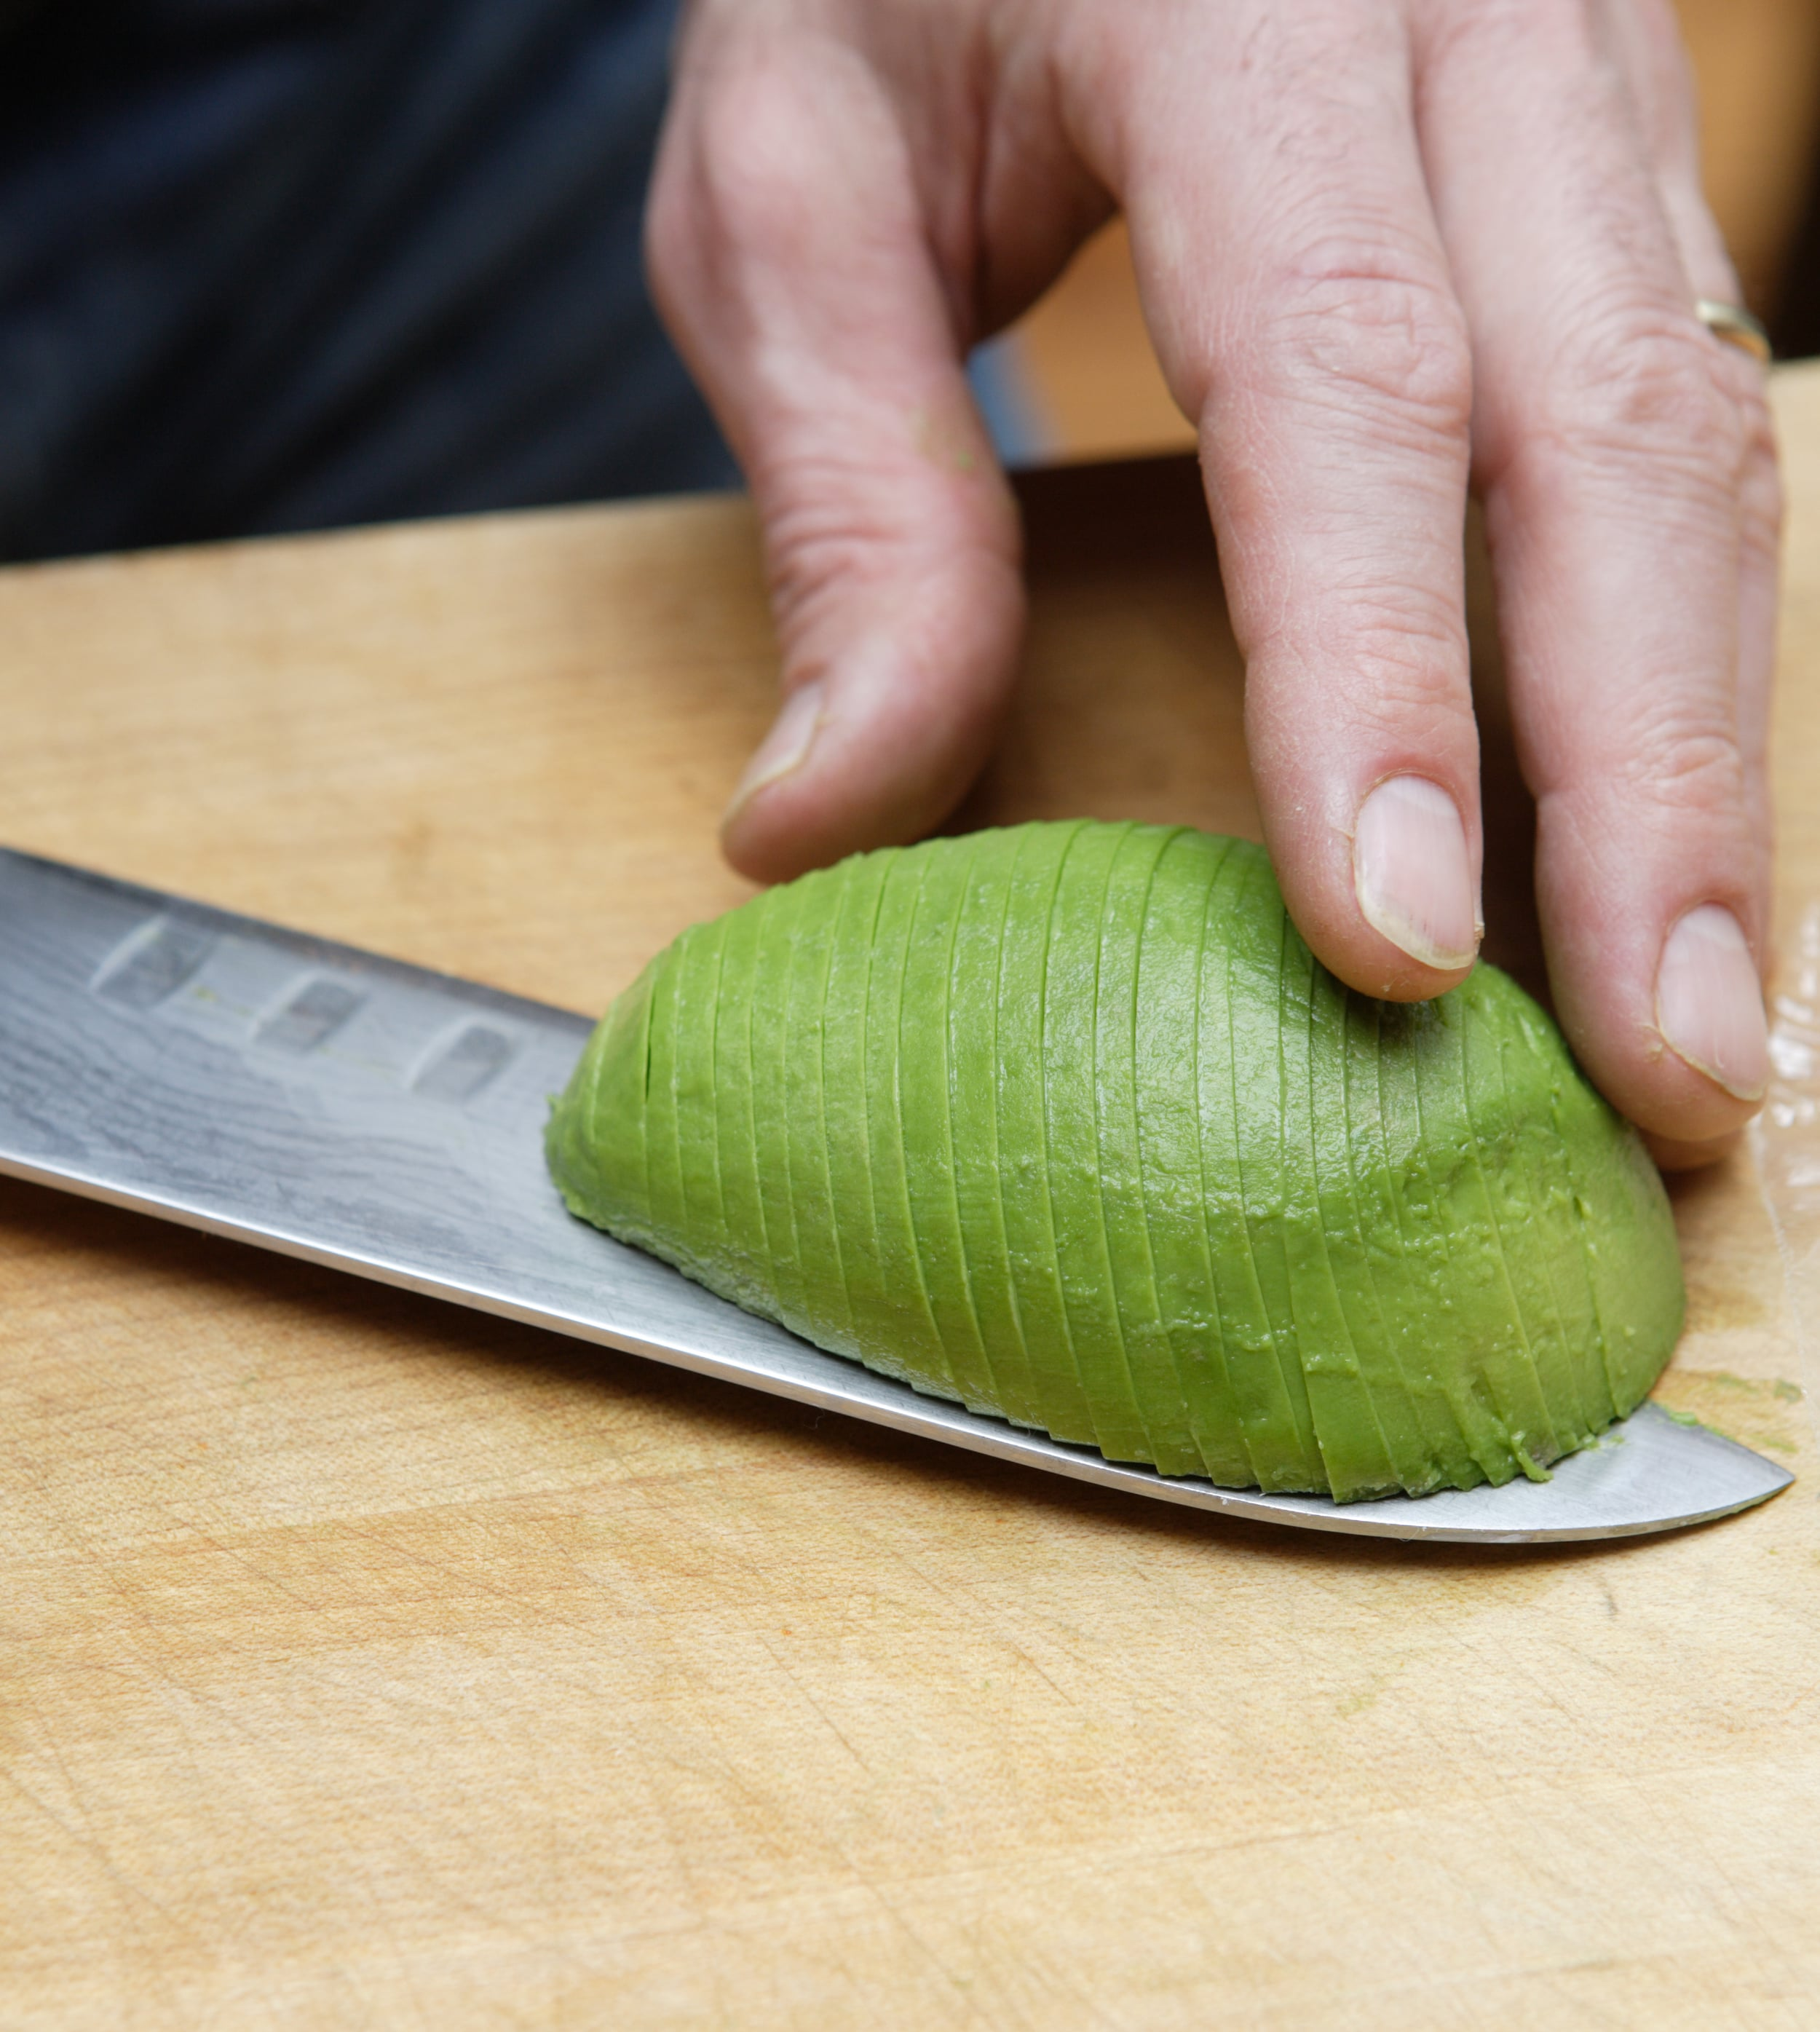 Sliced Avocado lift.jpg